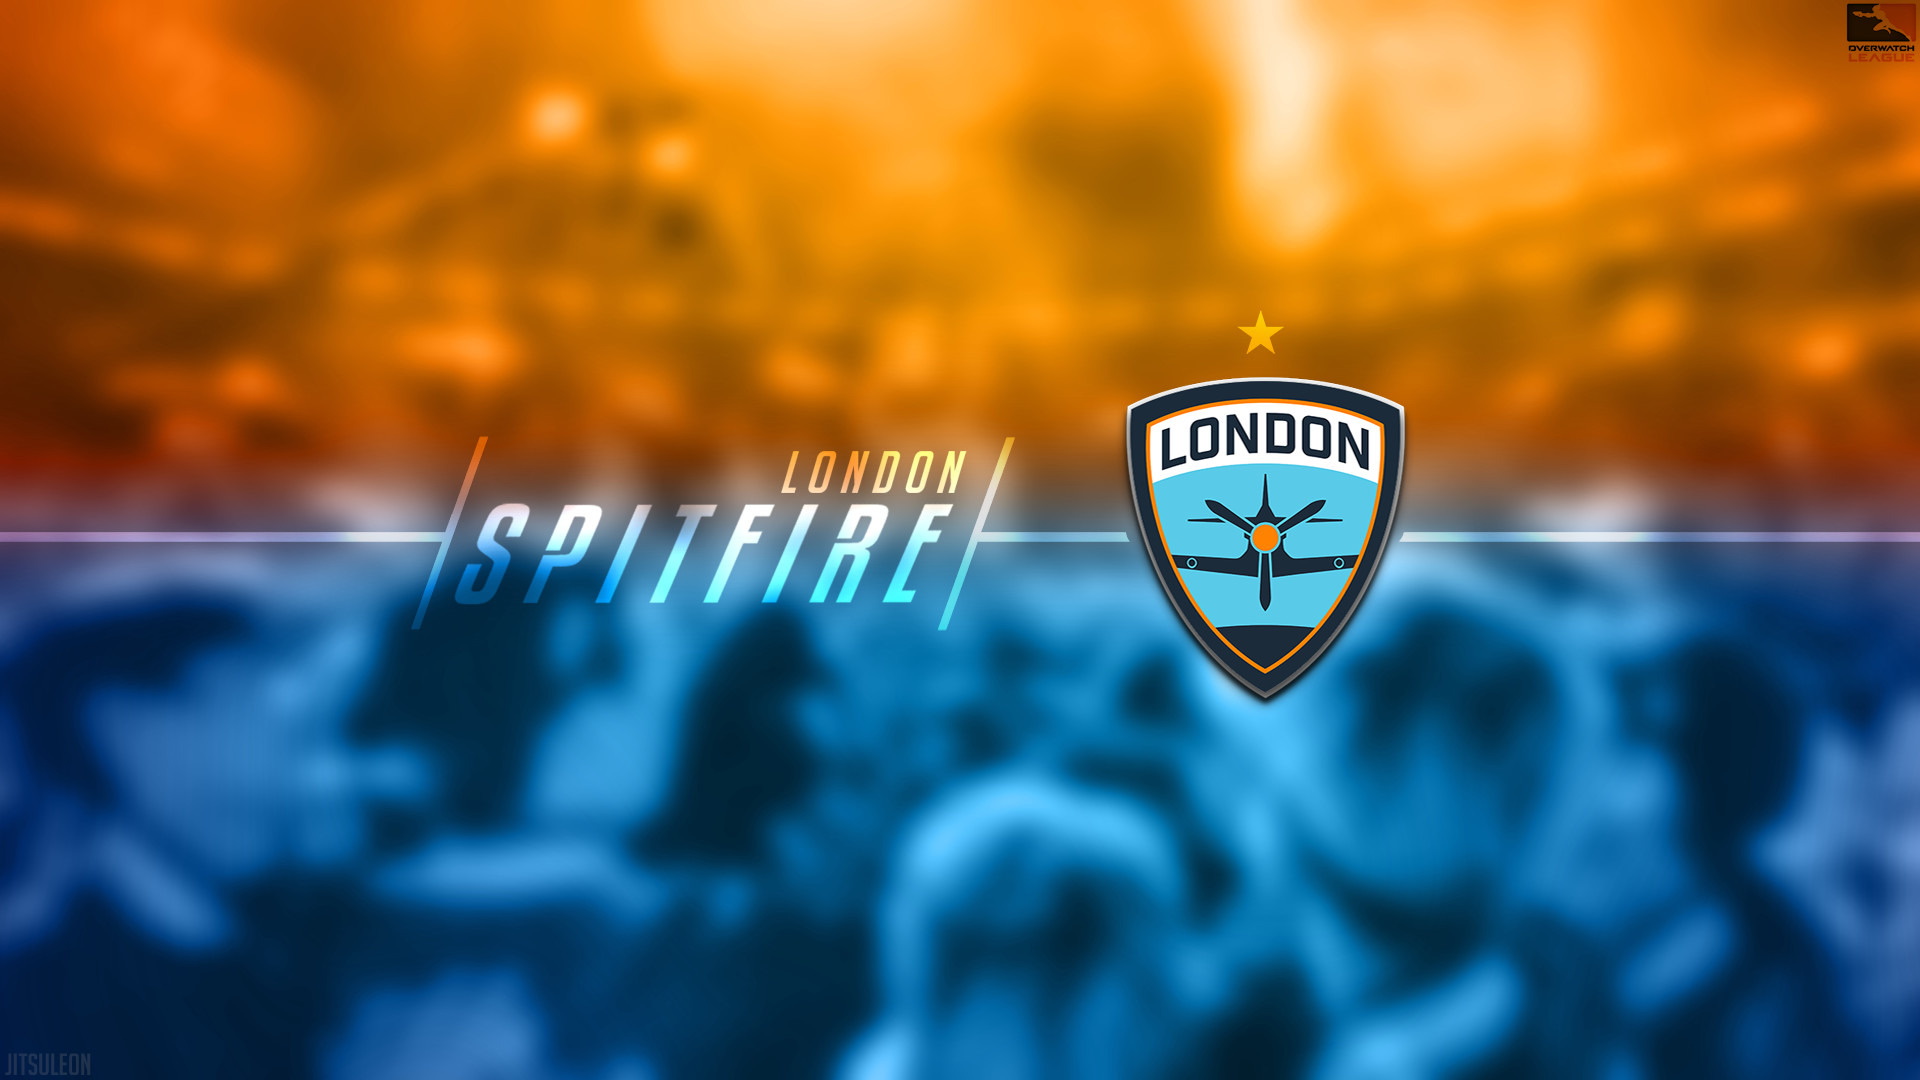 Res: 1920x1080, Fan-ContentBack with more Spitfire Wallpapers! Need a winners one? Well i  got you!